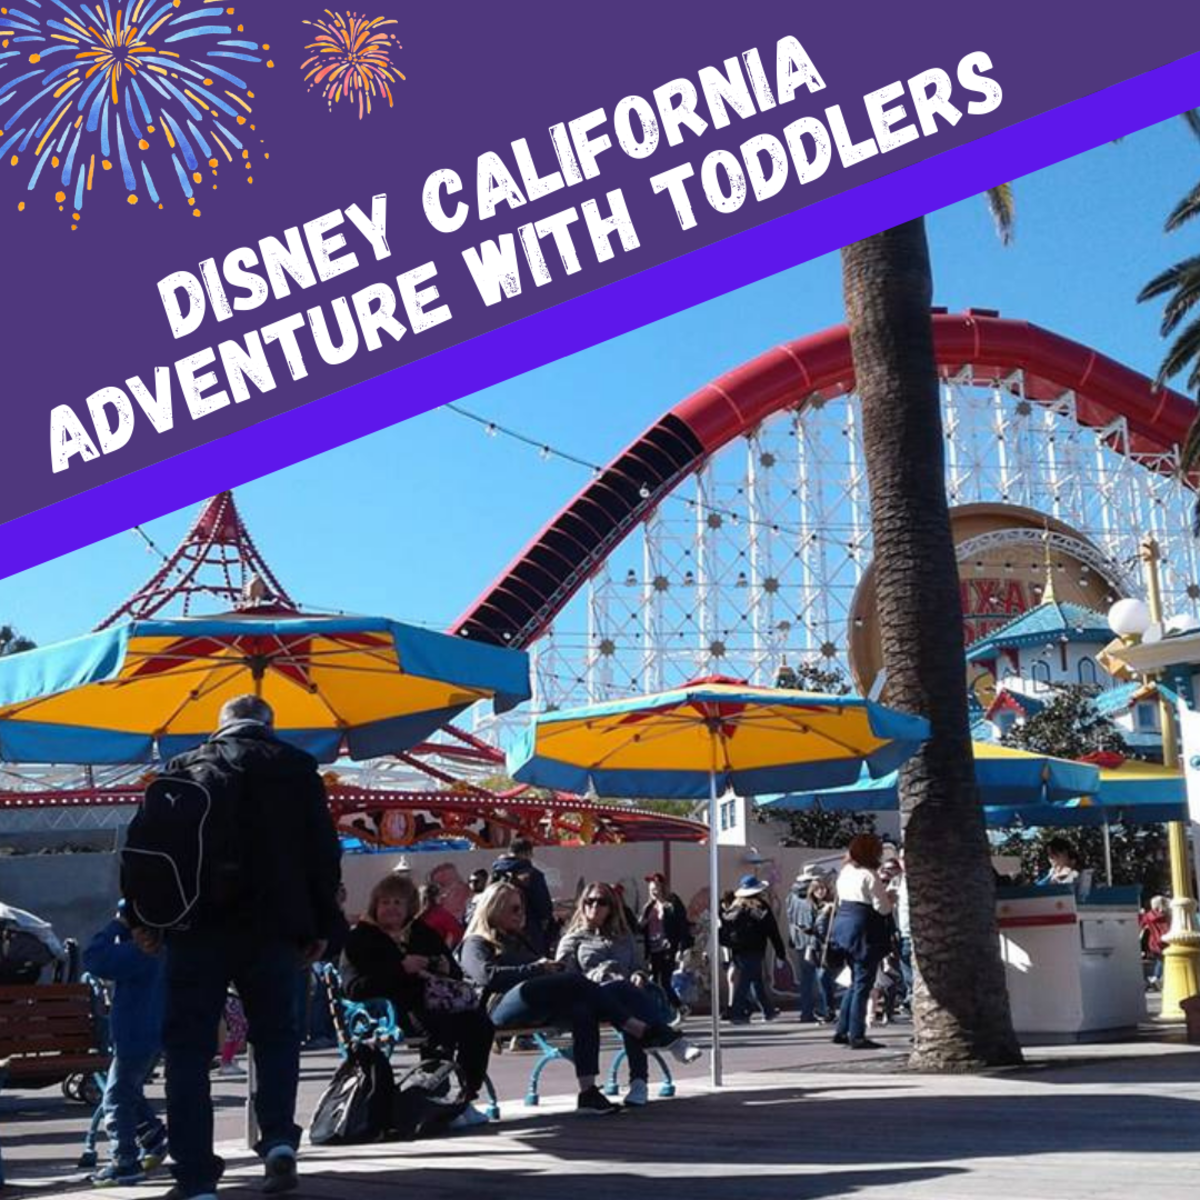 California Adventure has several rides suitable for very young children. Discover twelve of the best options for toddlers and preschoolers at this theme park.